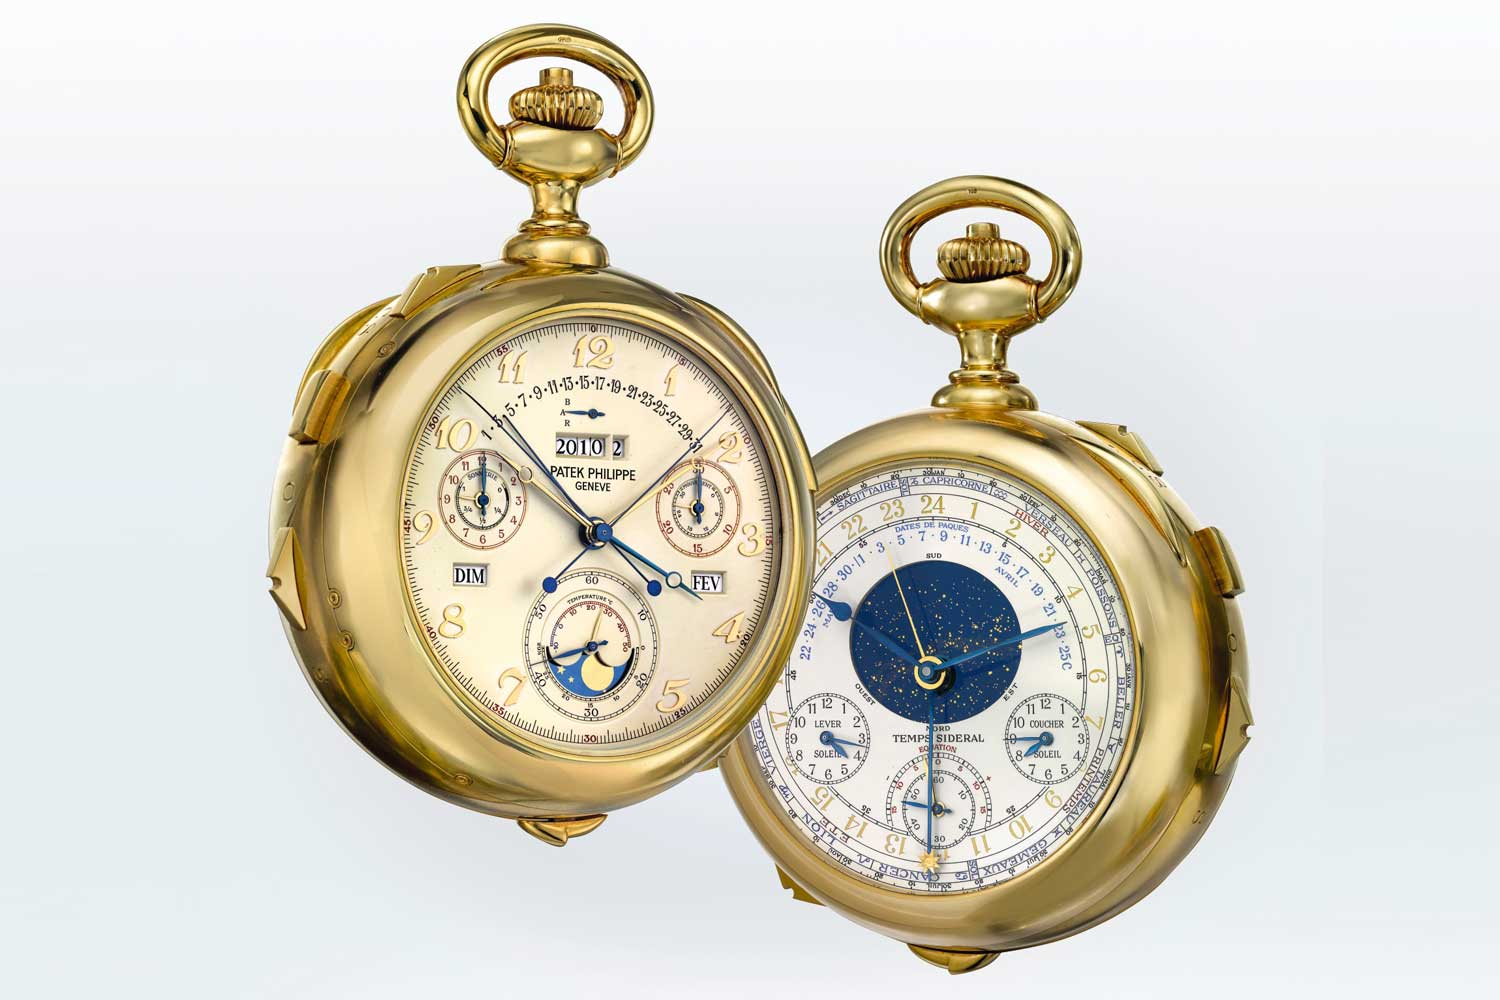 Patek Philippe Cal. 89, packed with 33 stellar complications for the maison's 150th anniversary